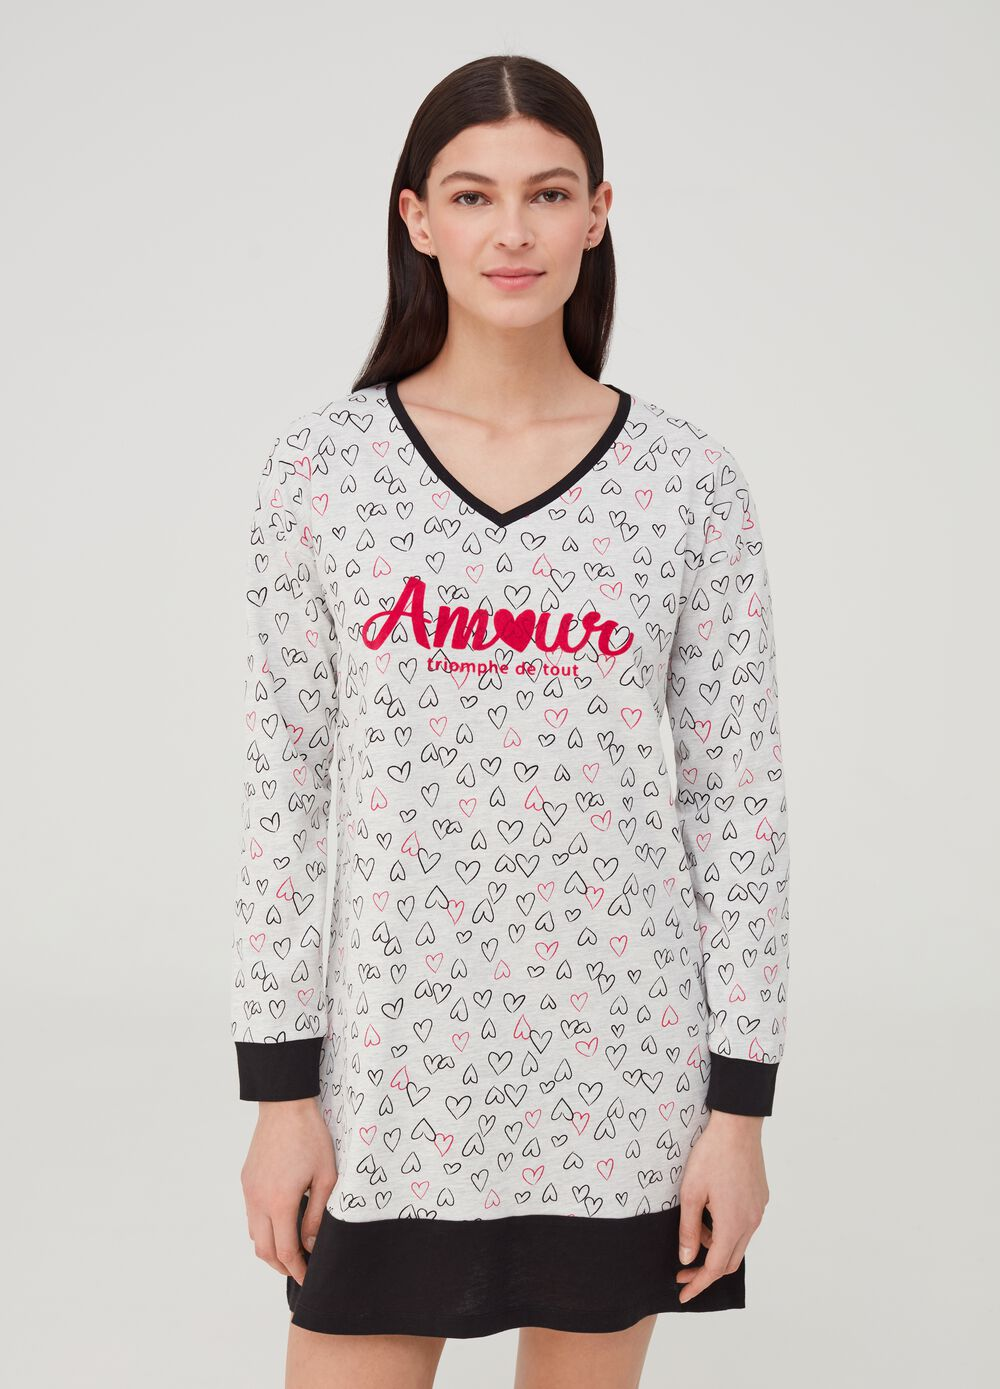 Viscose and organic cotton nightshirt